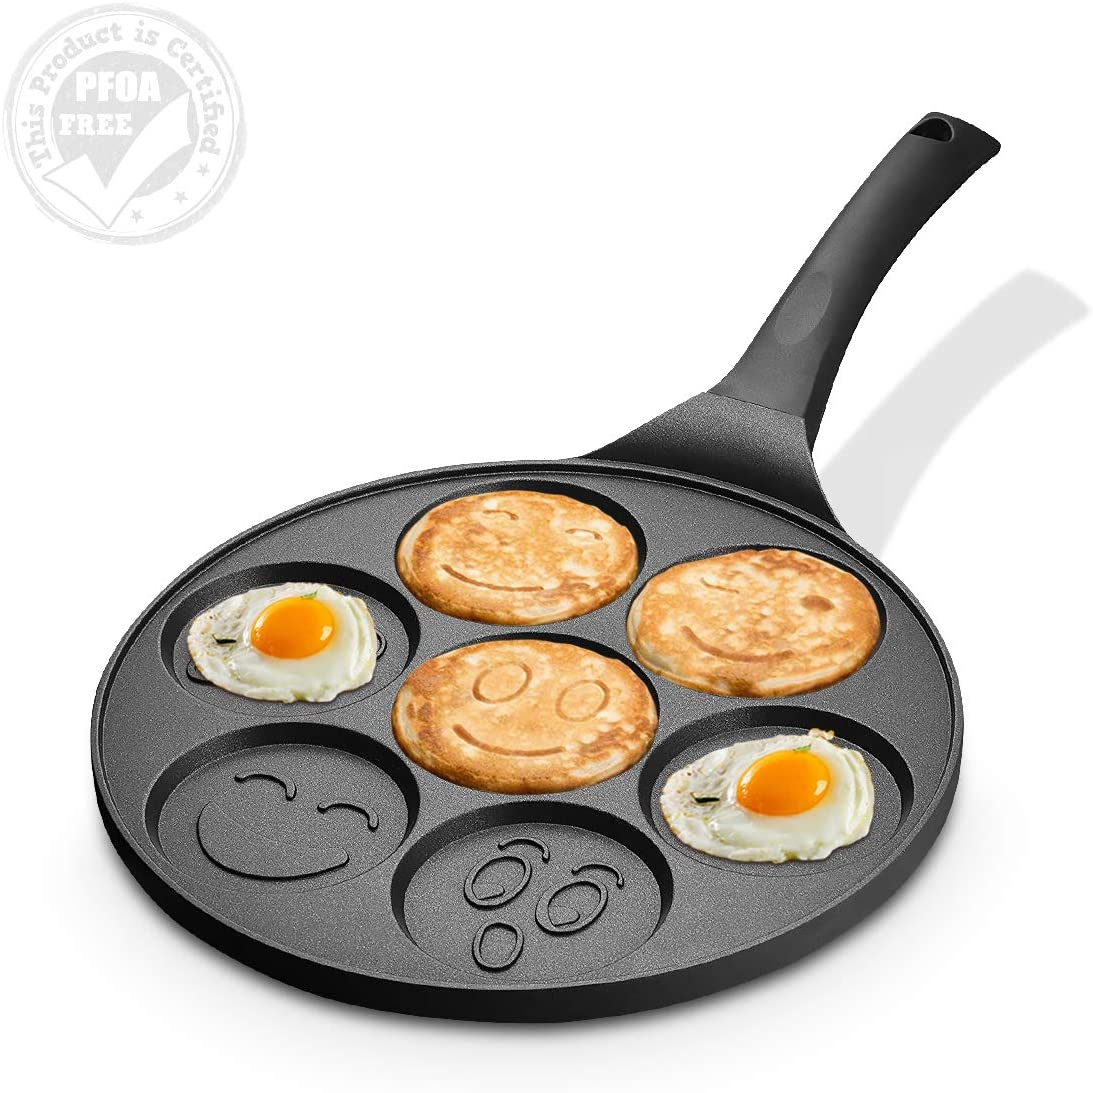 FRUITEAM Smiley Face Pancake Pan Nonstick Griddle 10 Inch Pancake Maker Mini Pancake and Flapjack 7 Mold Emoji Blini Pan for Son Daughter Gifts from Mom